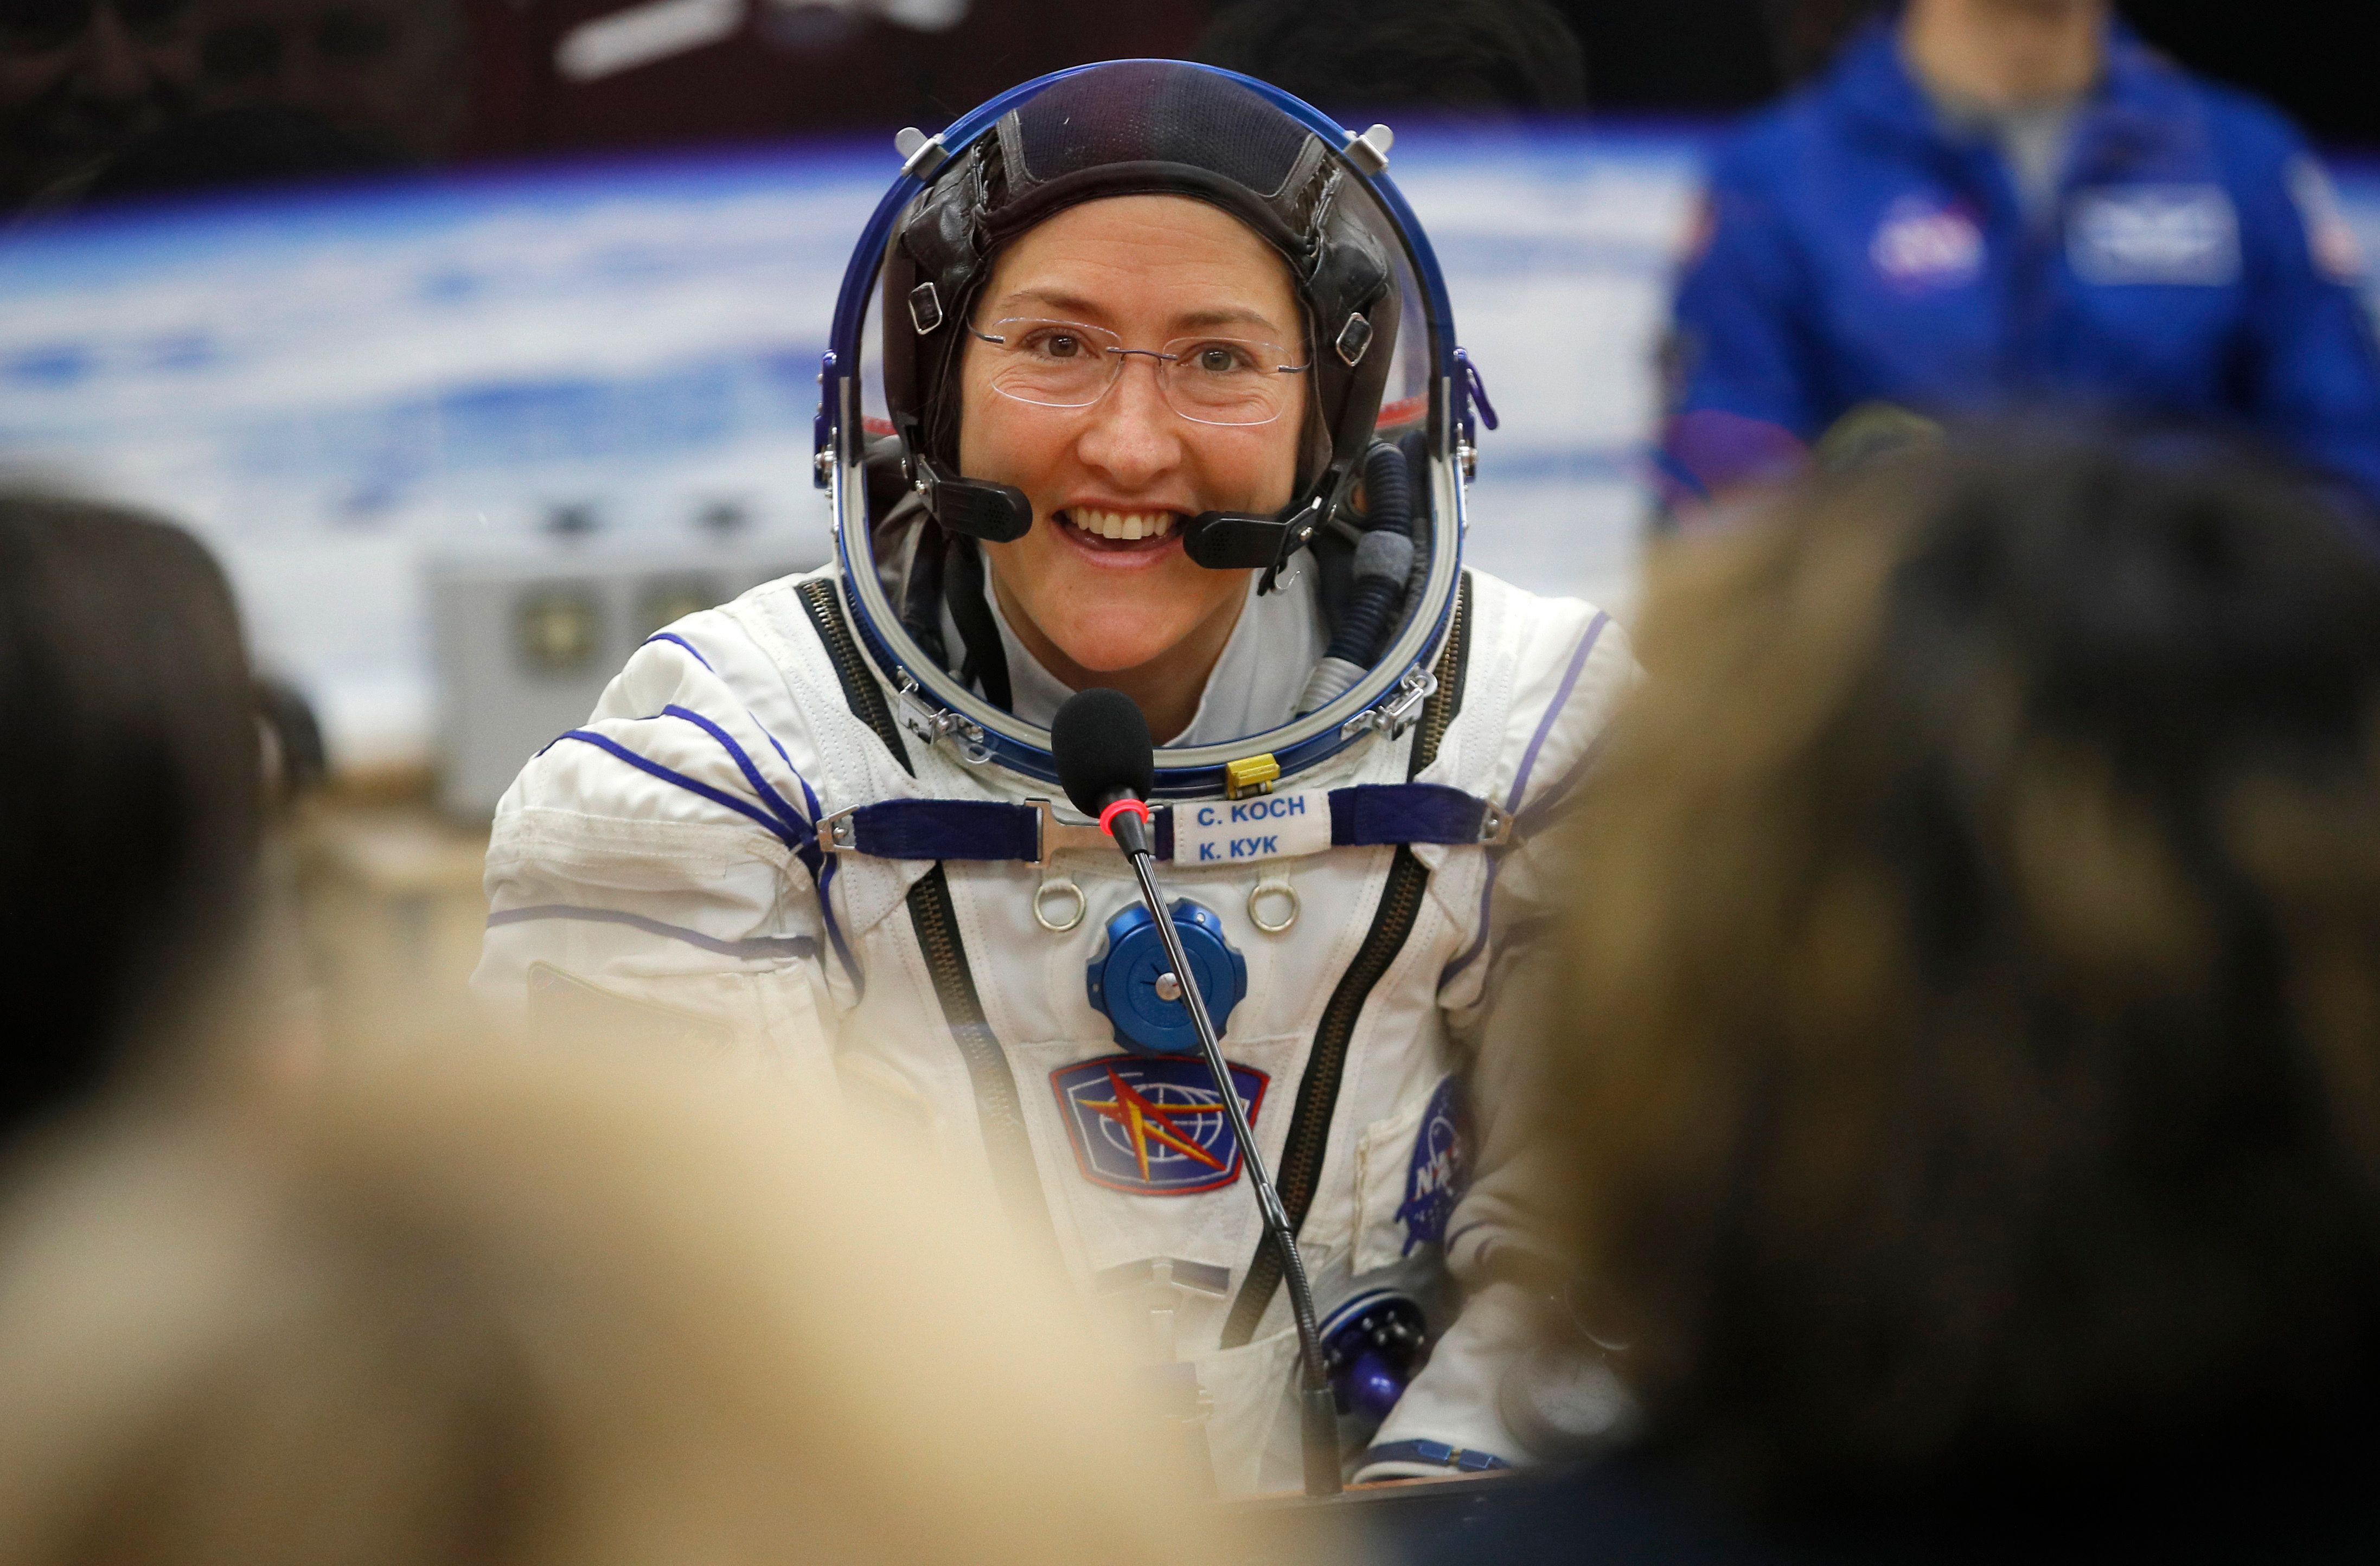 U.S. astronaut Christina Hammock Koch, member of the main crew of the expedition to the International Space Station (ISS), speaks with her relatives through a safety glass prior the launch of Soyuz MS-12 space ship at the Russian leased Baikonur cosmodrome, Kazakhstan, Thursday, March 14, 2019. (AP Photo/Dmitri Lovetsky, Pool)